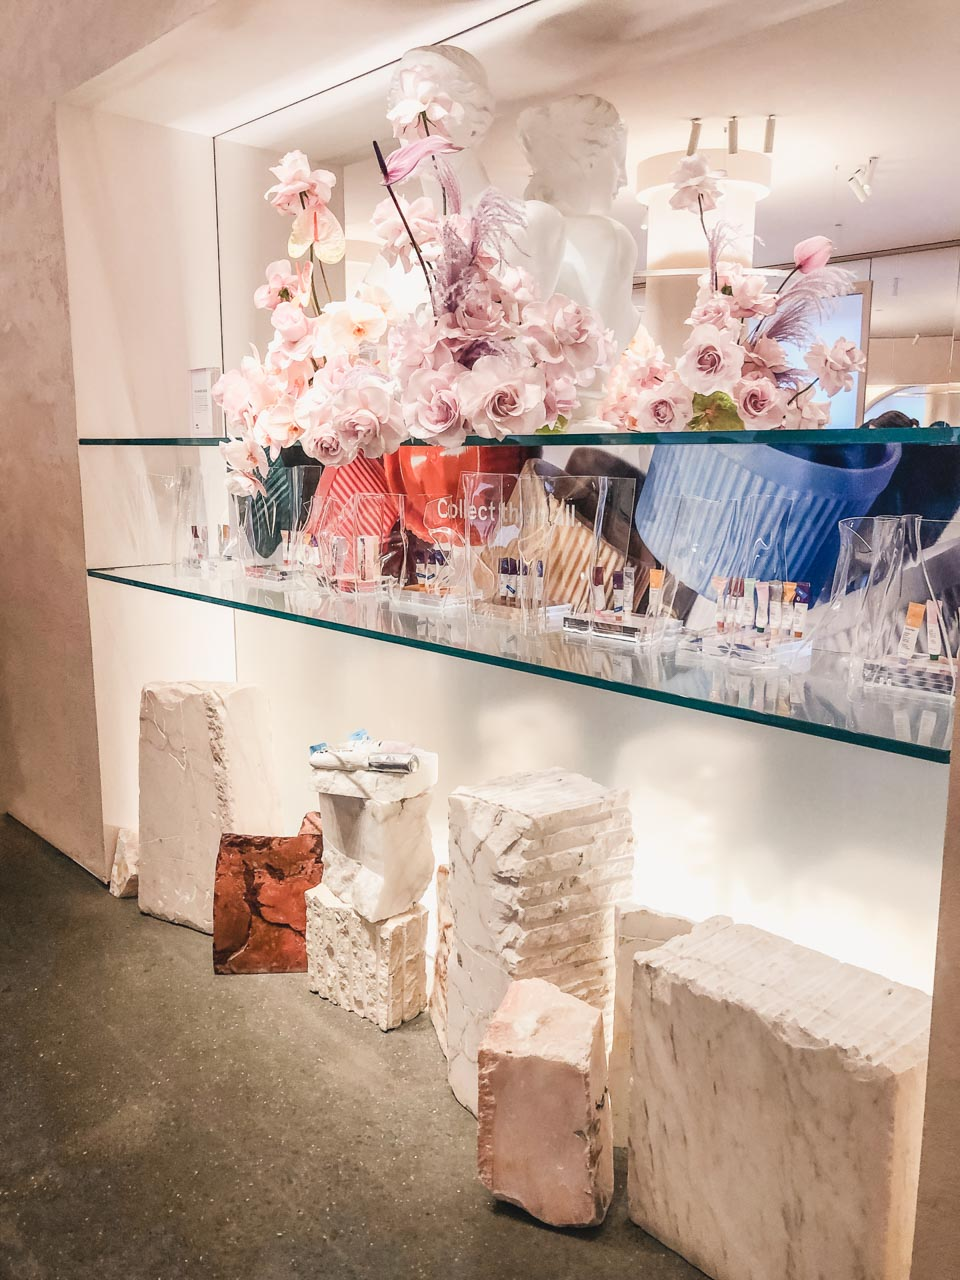 Decorations inside the Glossier flagship store in New York City